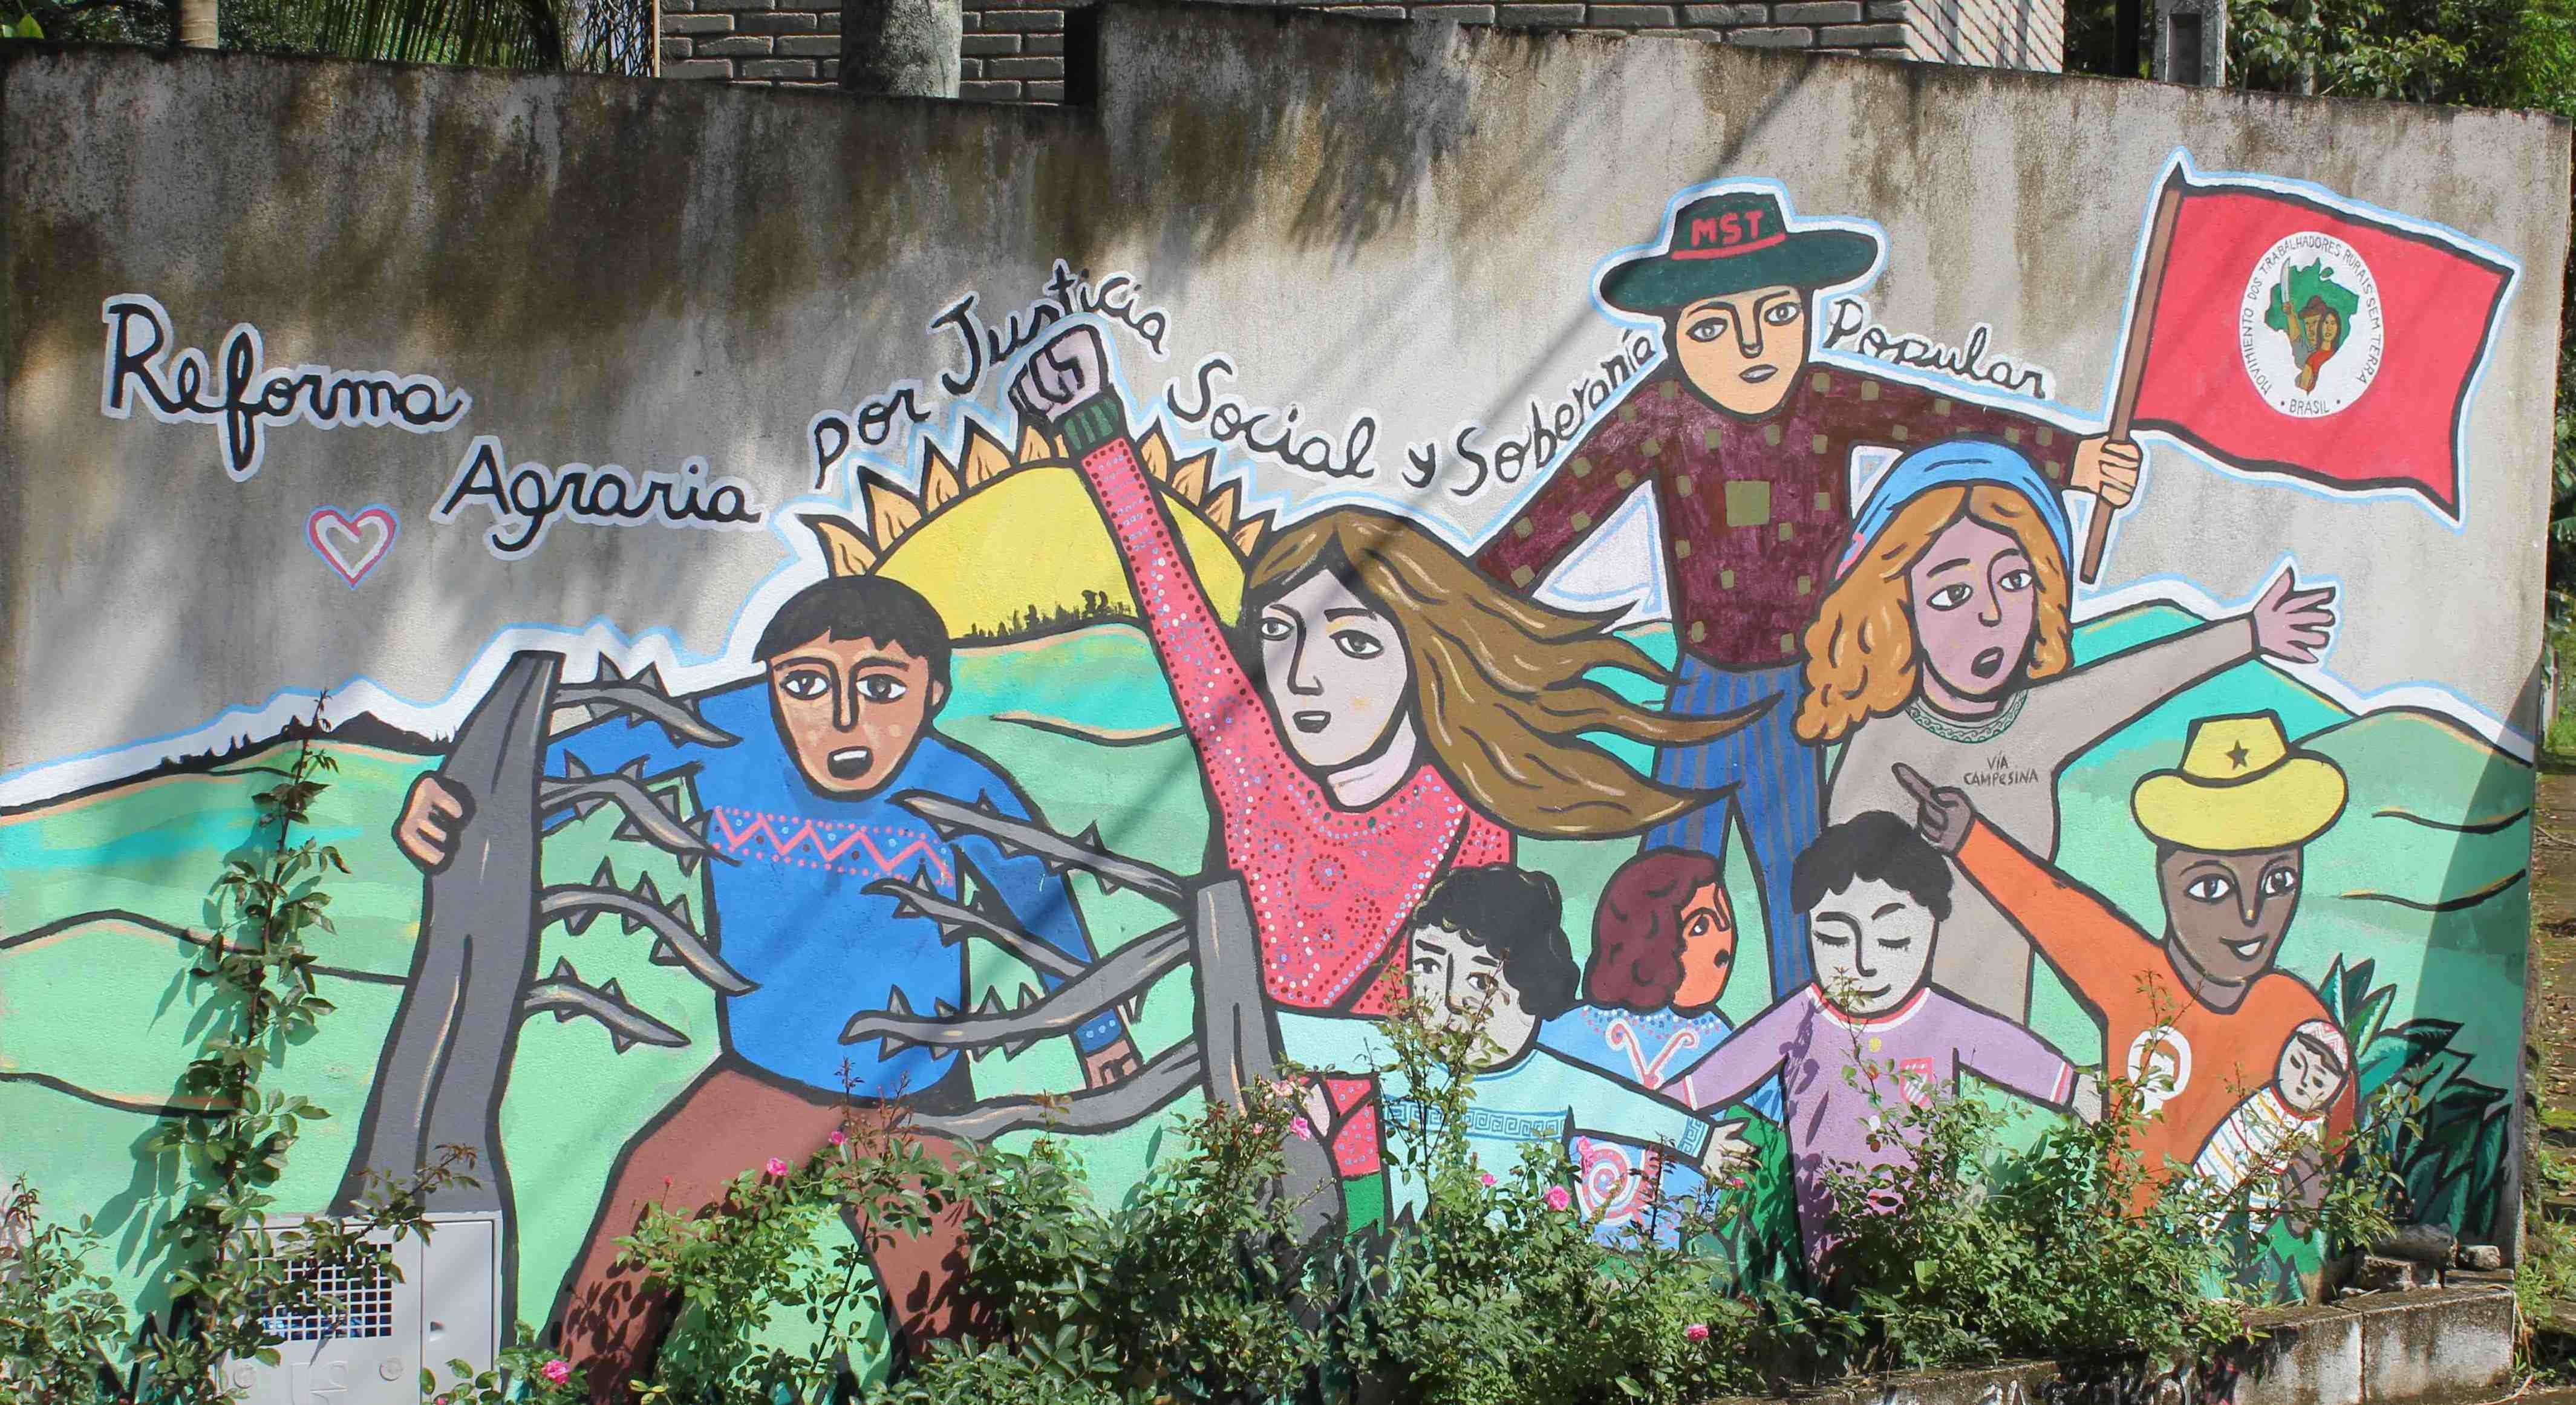 Escola Nacional Florestan Fernandes, São Paulo, MST, outer wall mural. photo by Udi